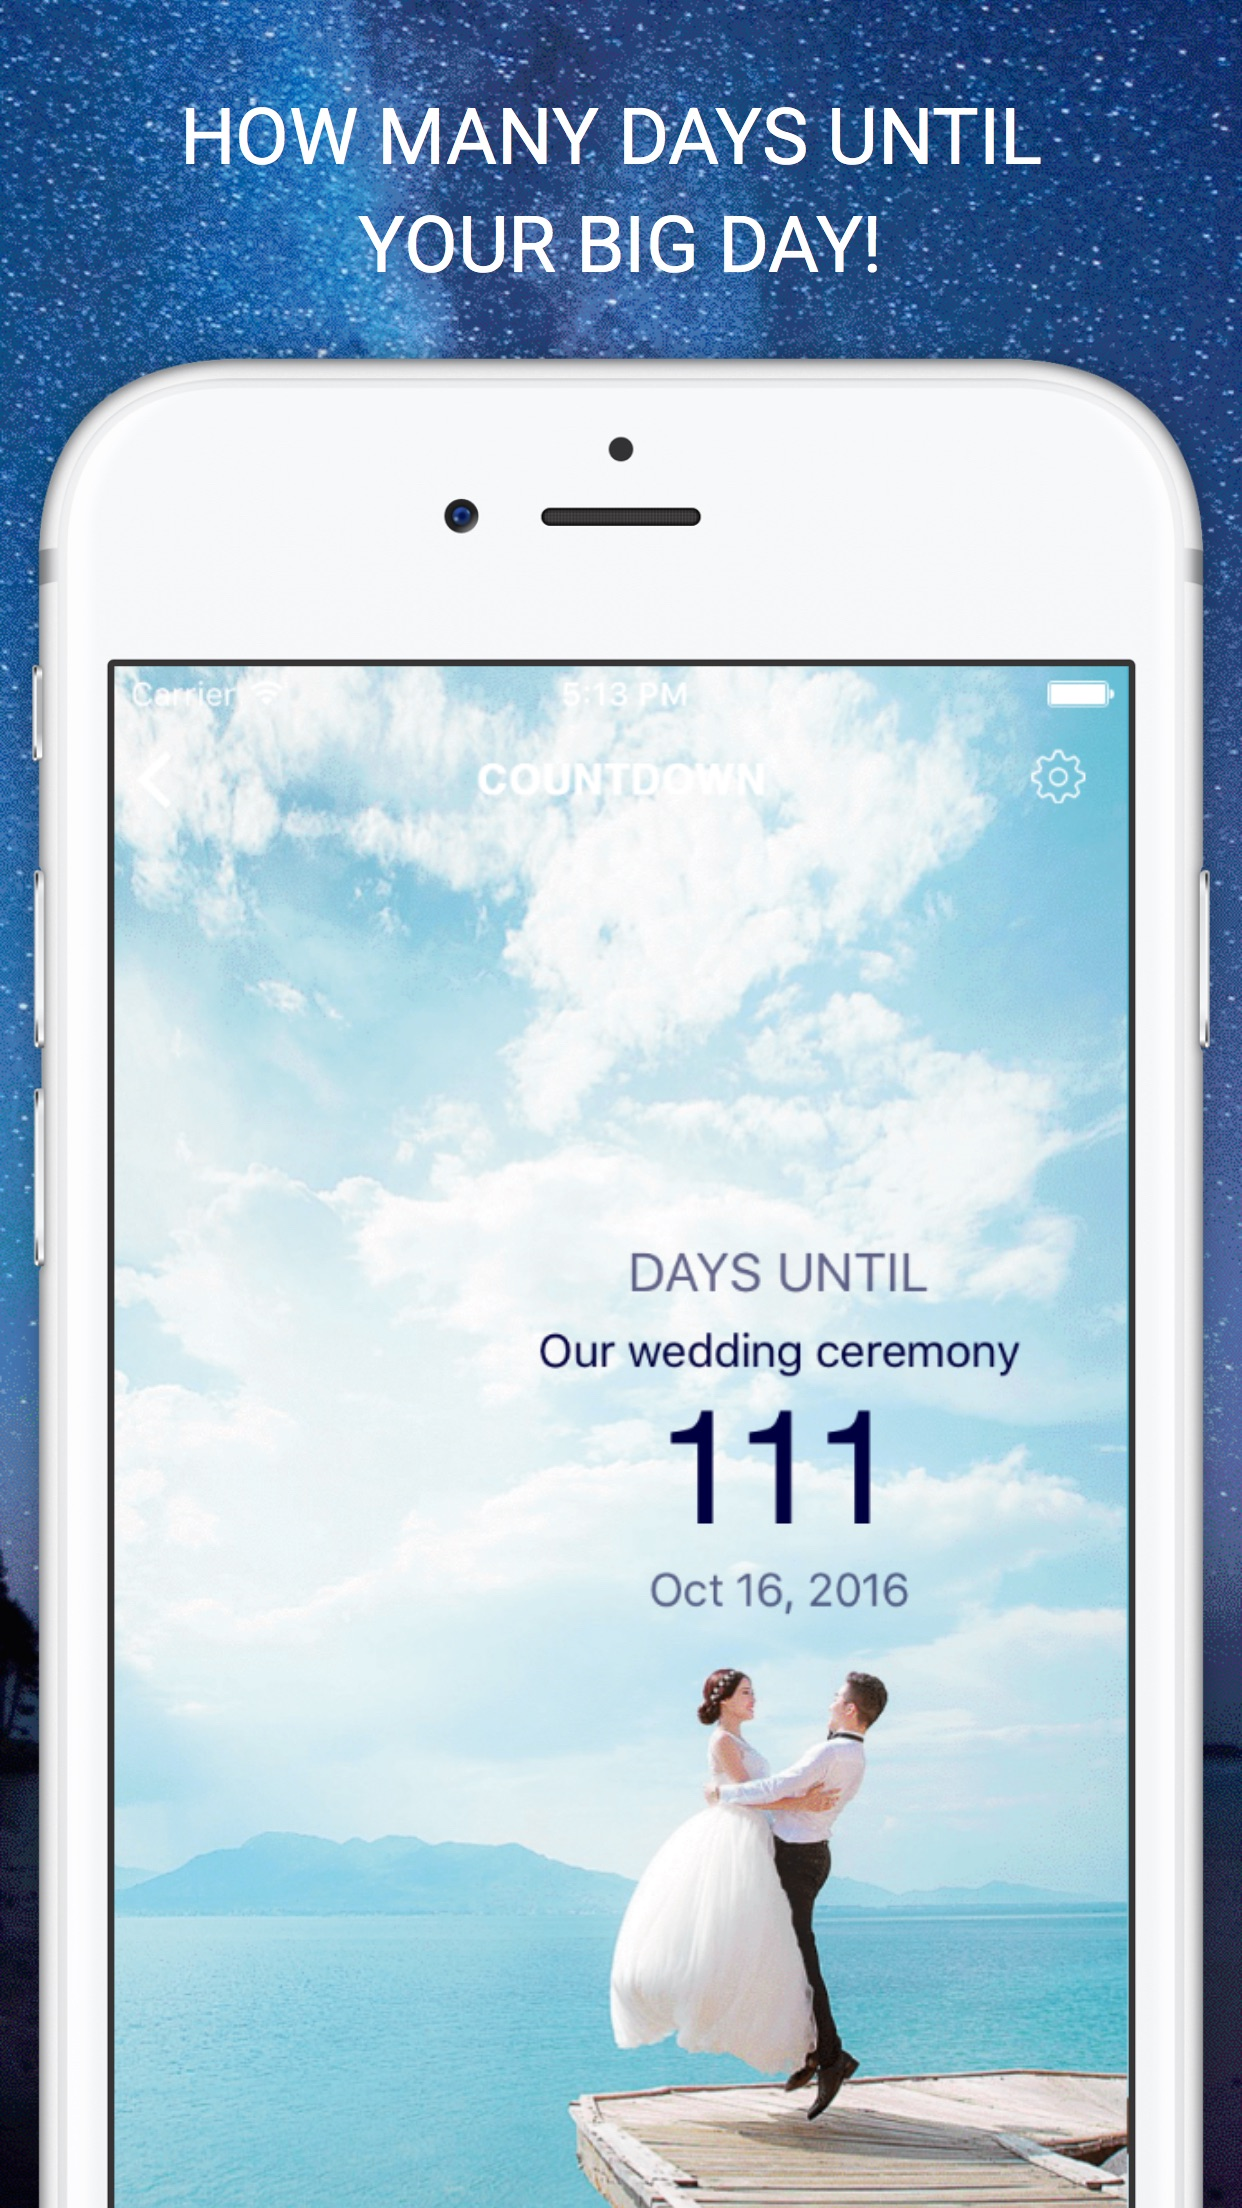 Countdown Timer - How Many Days Until or Days Since Calculator, Event Organizer, and Day counter Screenshot